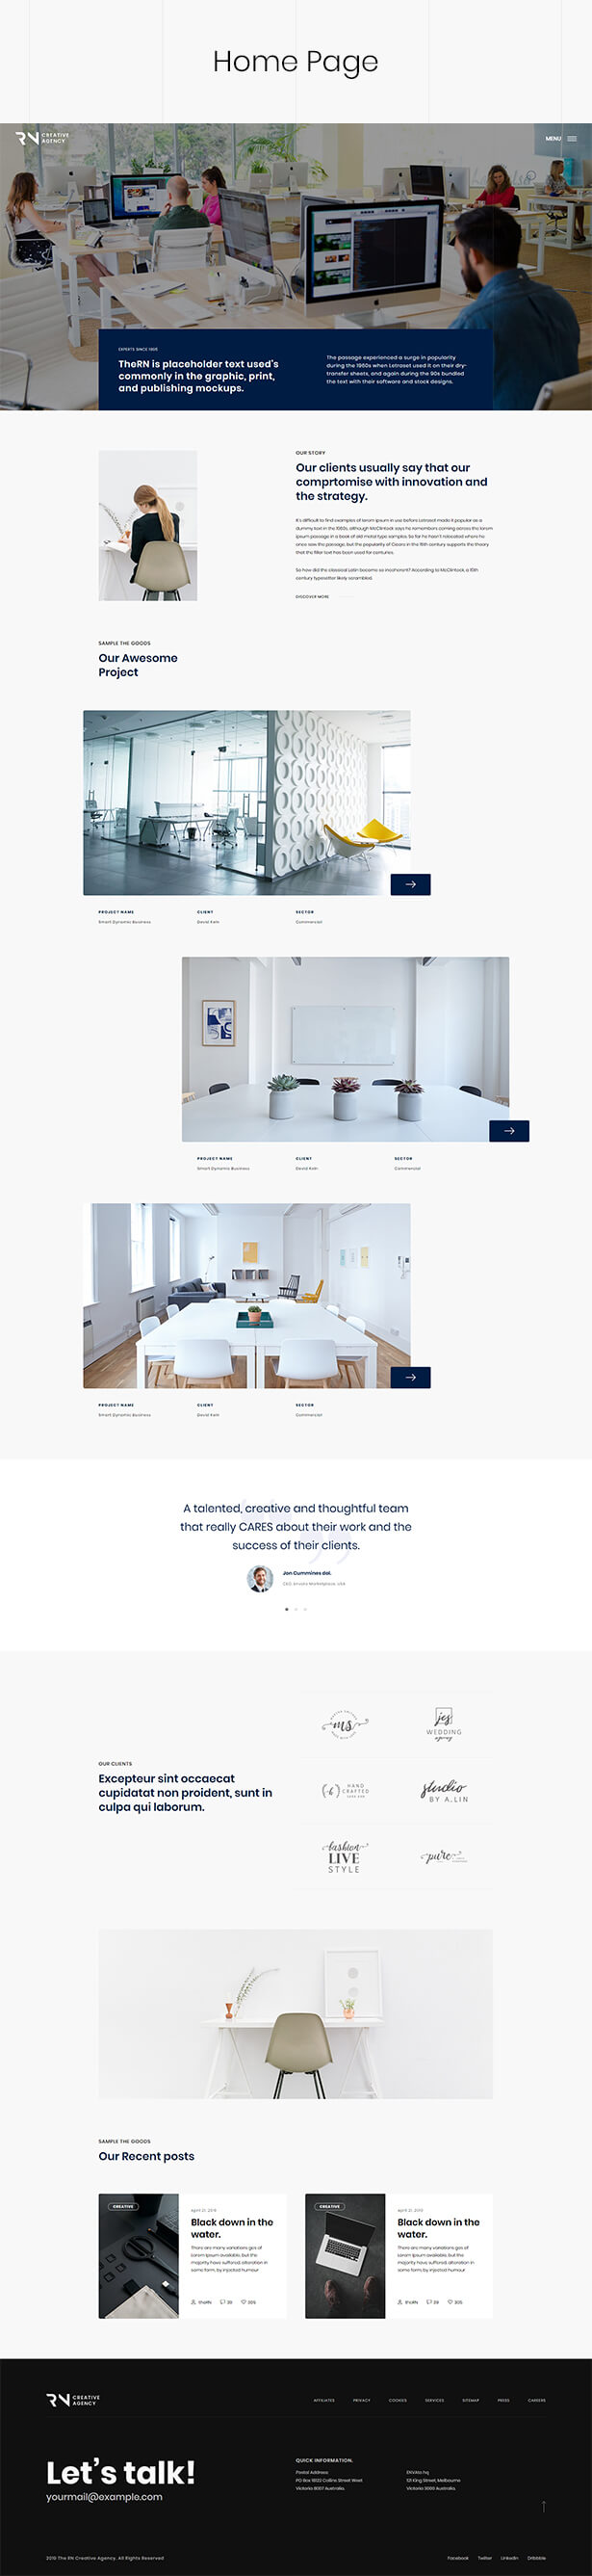 TheRN - Creative Agency HTML5 Template - 3